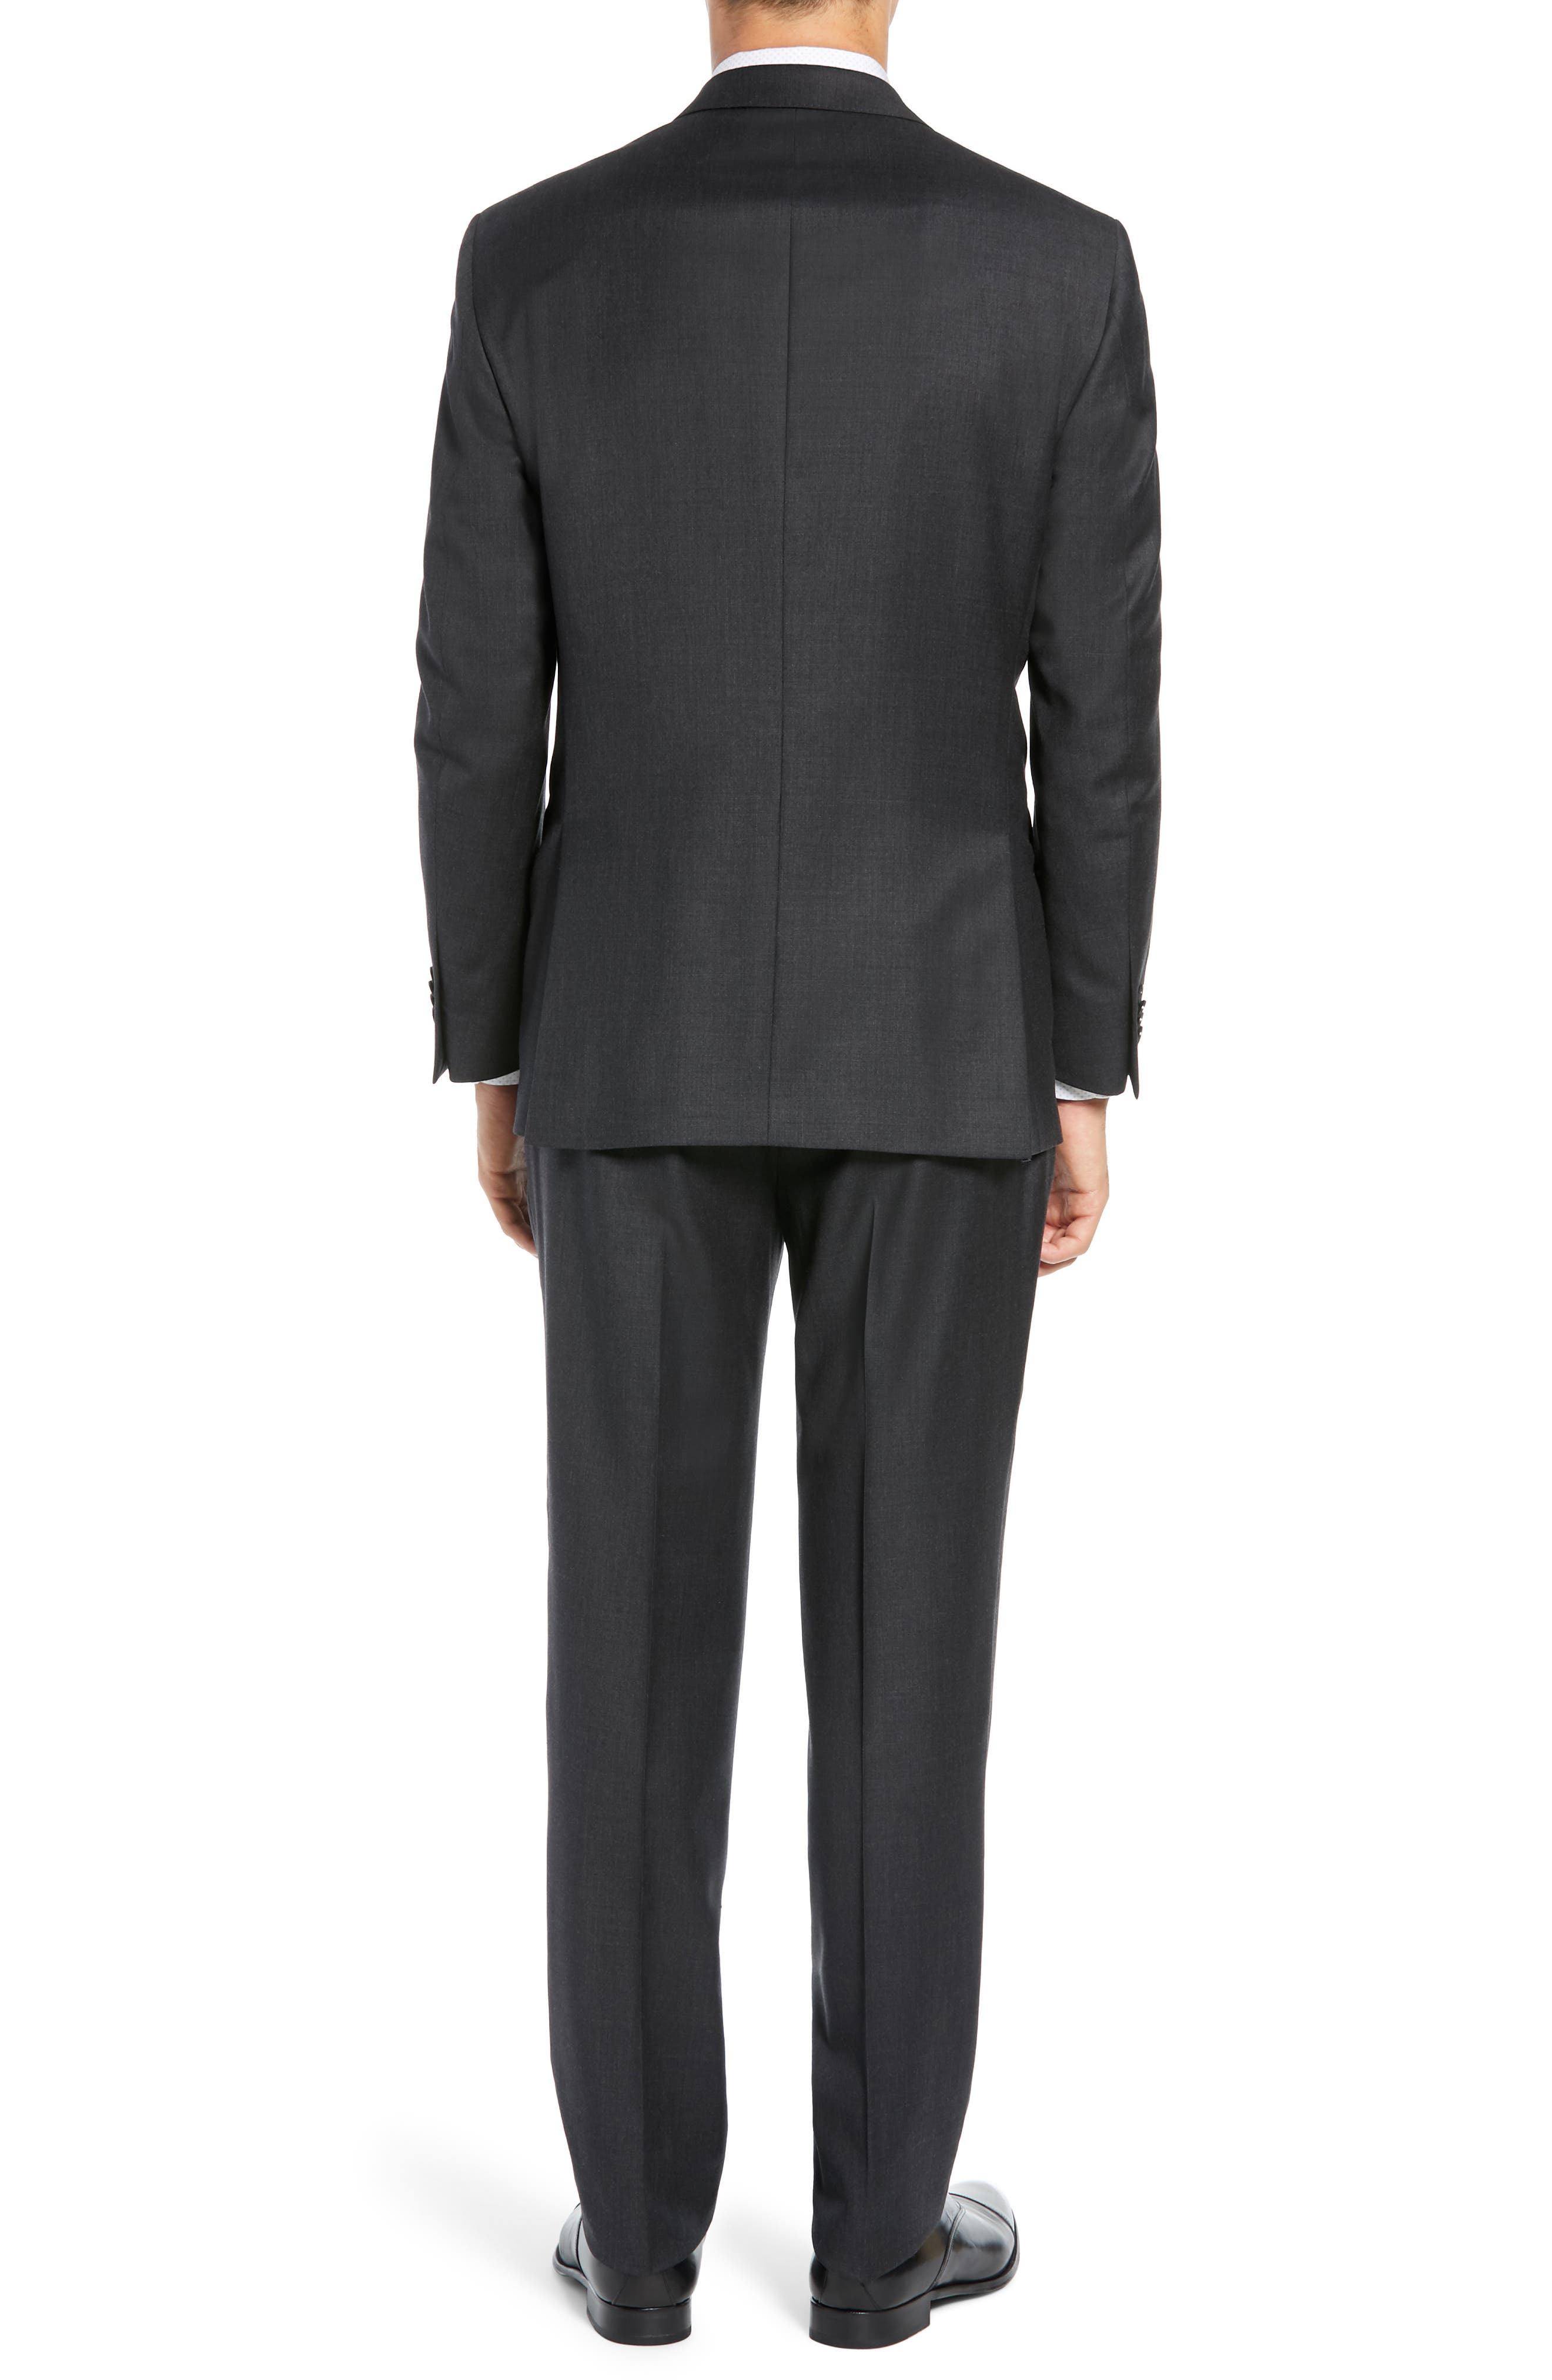 PETER MILLAR, Classic Fit Wool Suit, Alternate thumbnail 2, color, CHARCOAL